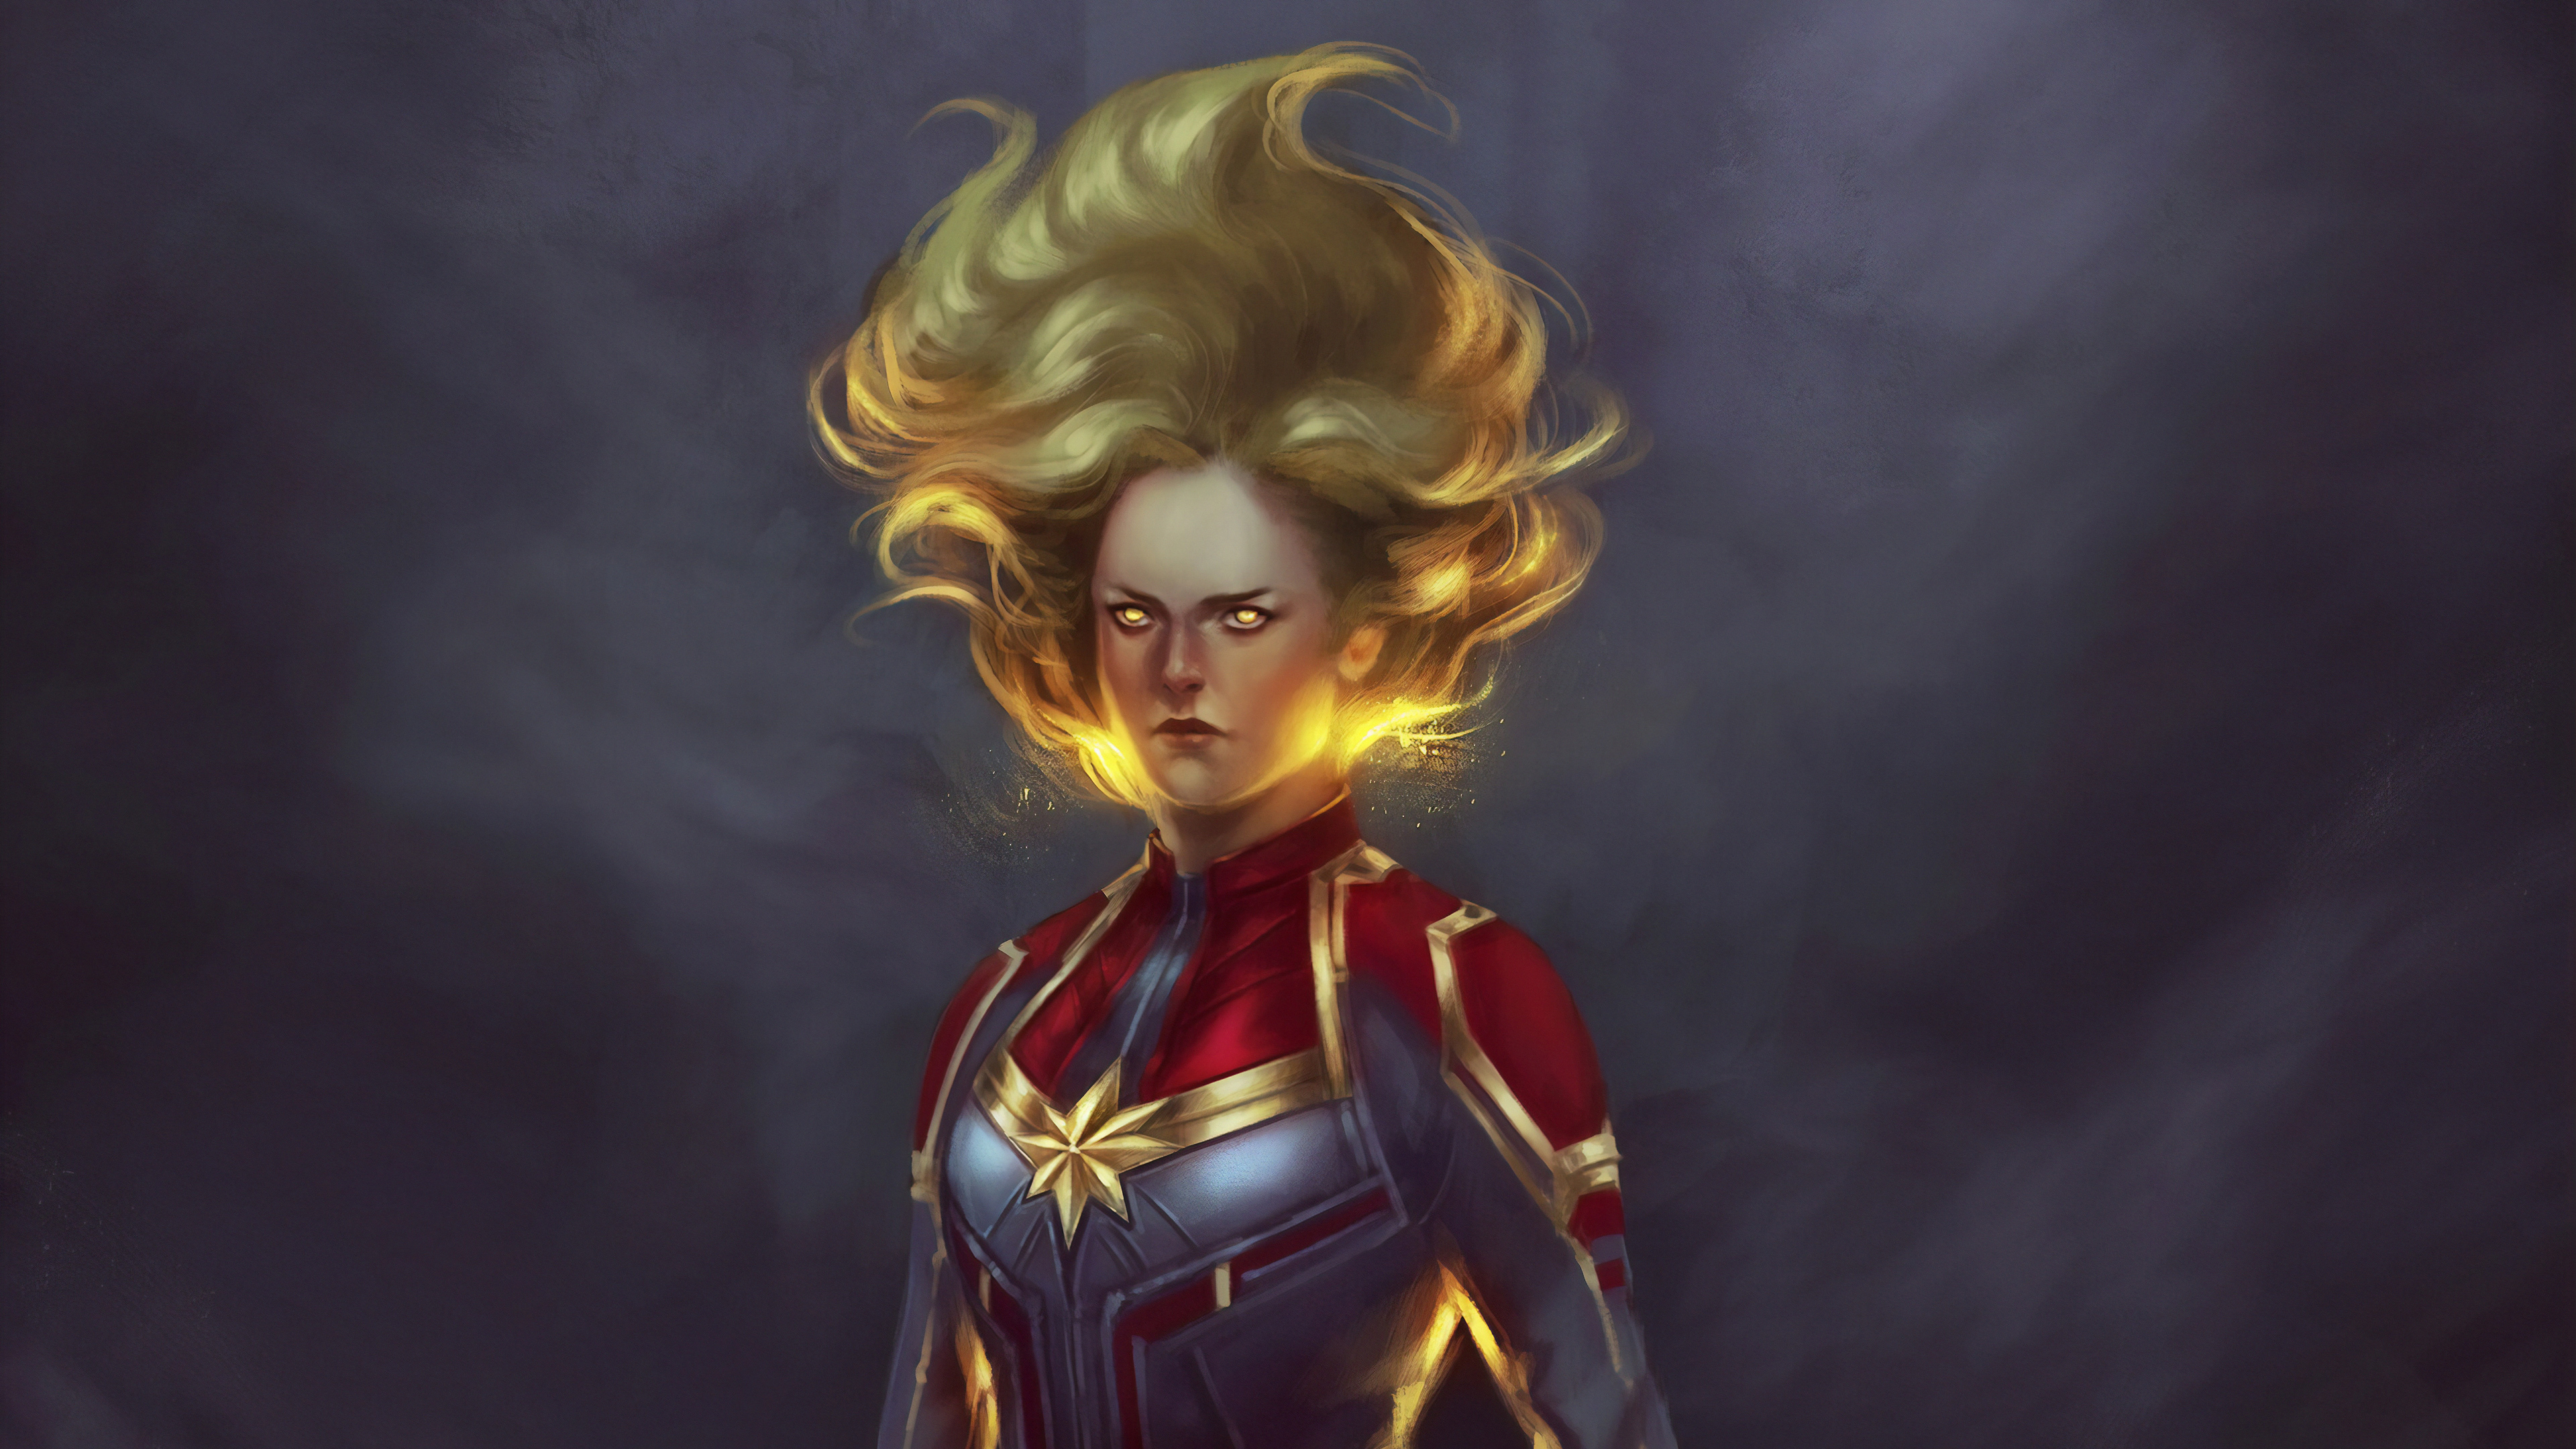 captain marvel newart 1570394687 - Captain Marvel Newart - superheroes wallpapers, hd-wallpapers, captain marvel wallpapers, artwork wallpapers, artstation wallpapers, art wallpapers, 4k-wallpapers